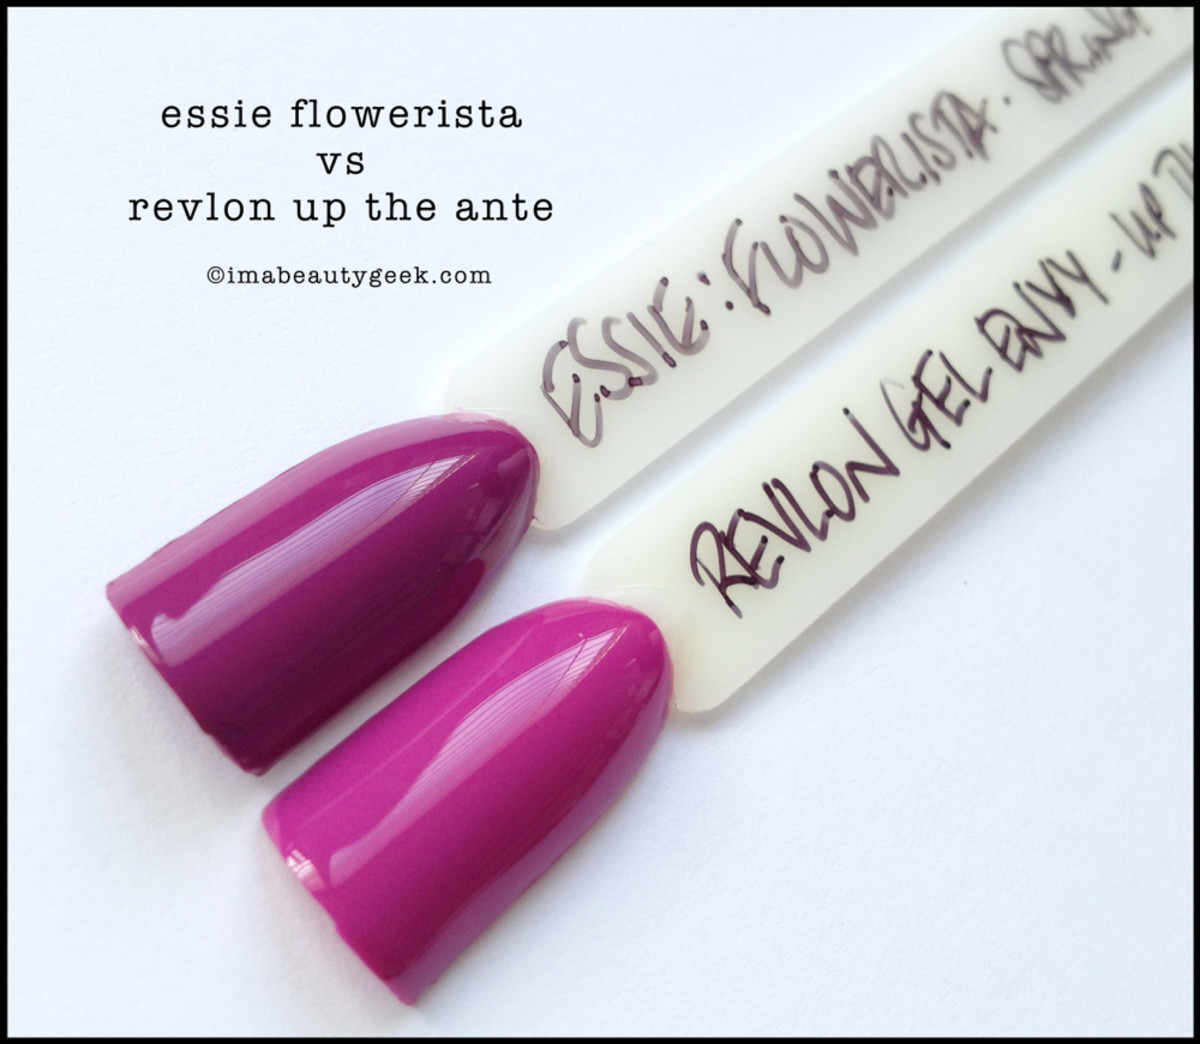 Essie Flowerista Comparison Revlon Up The Ante